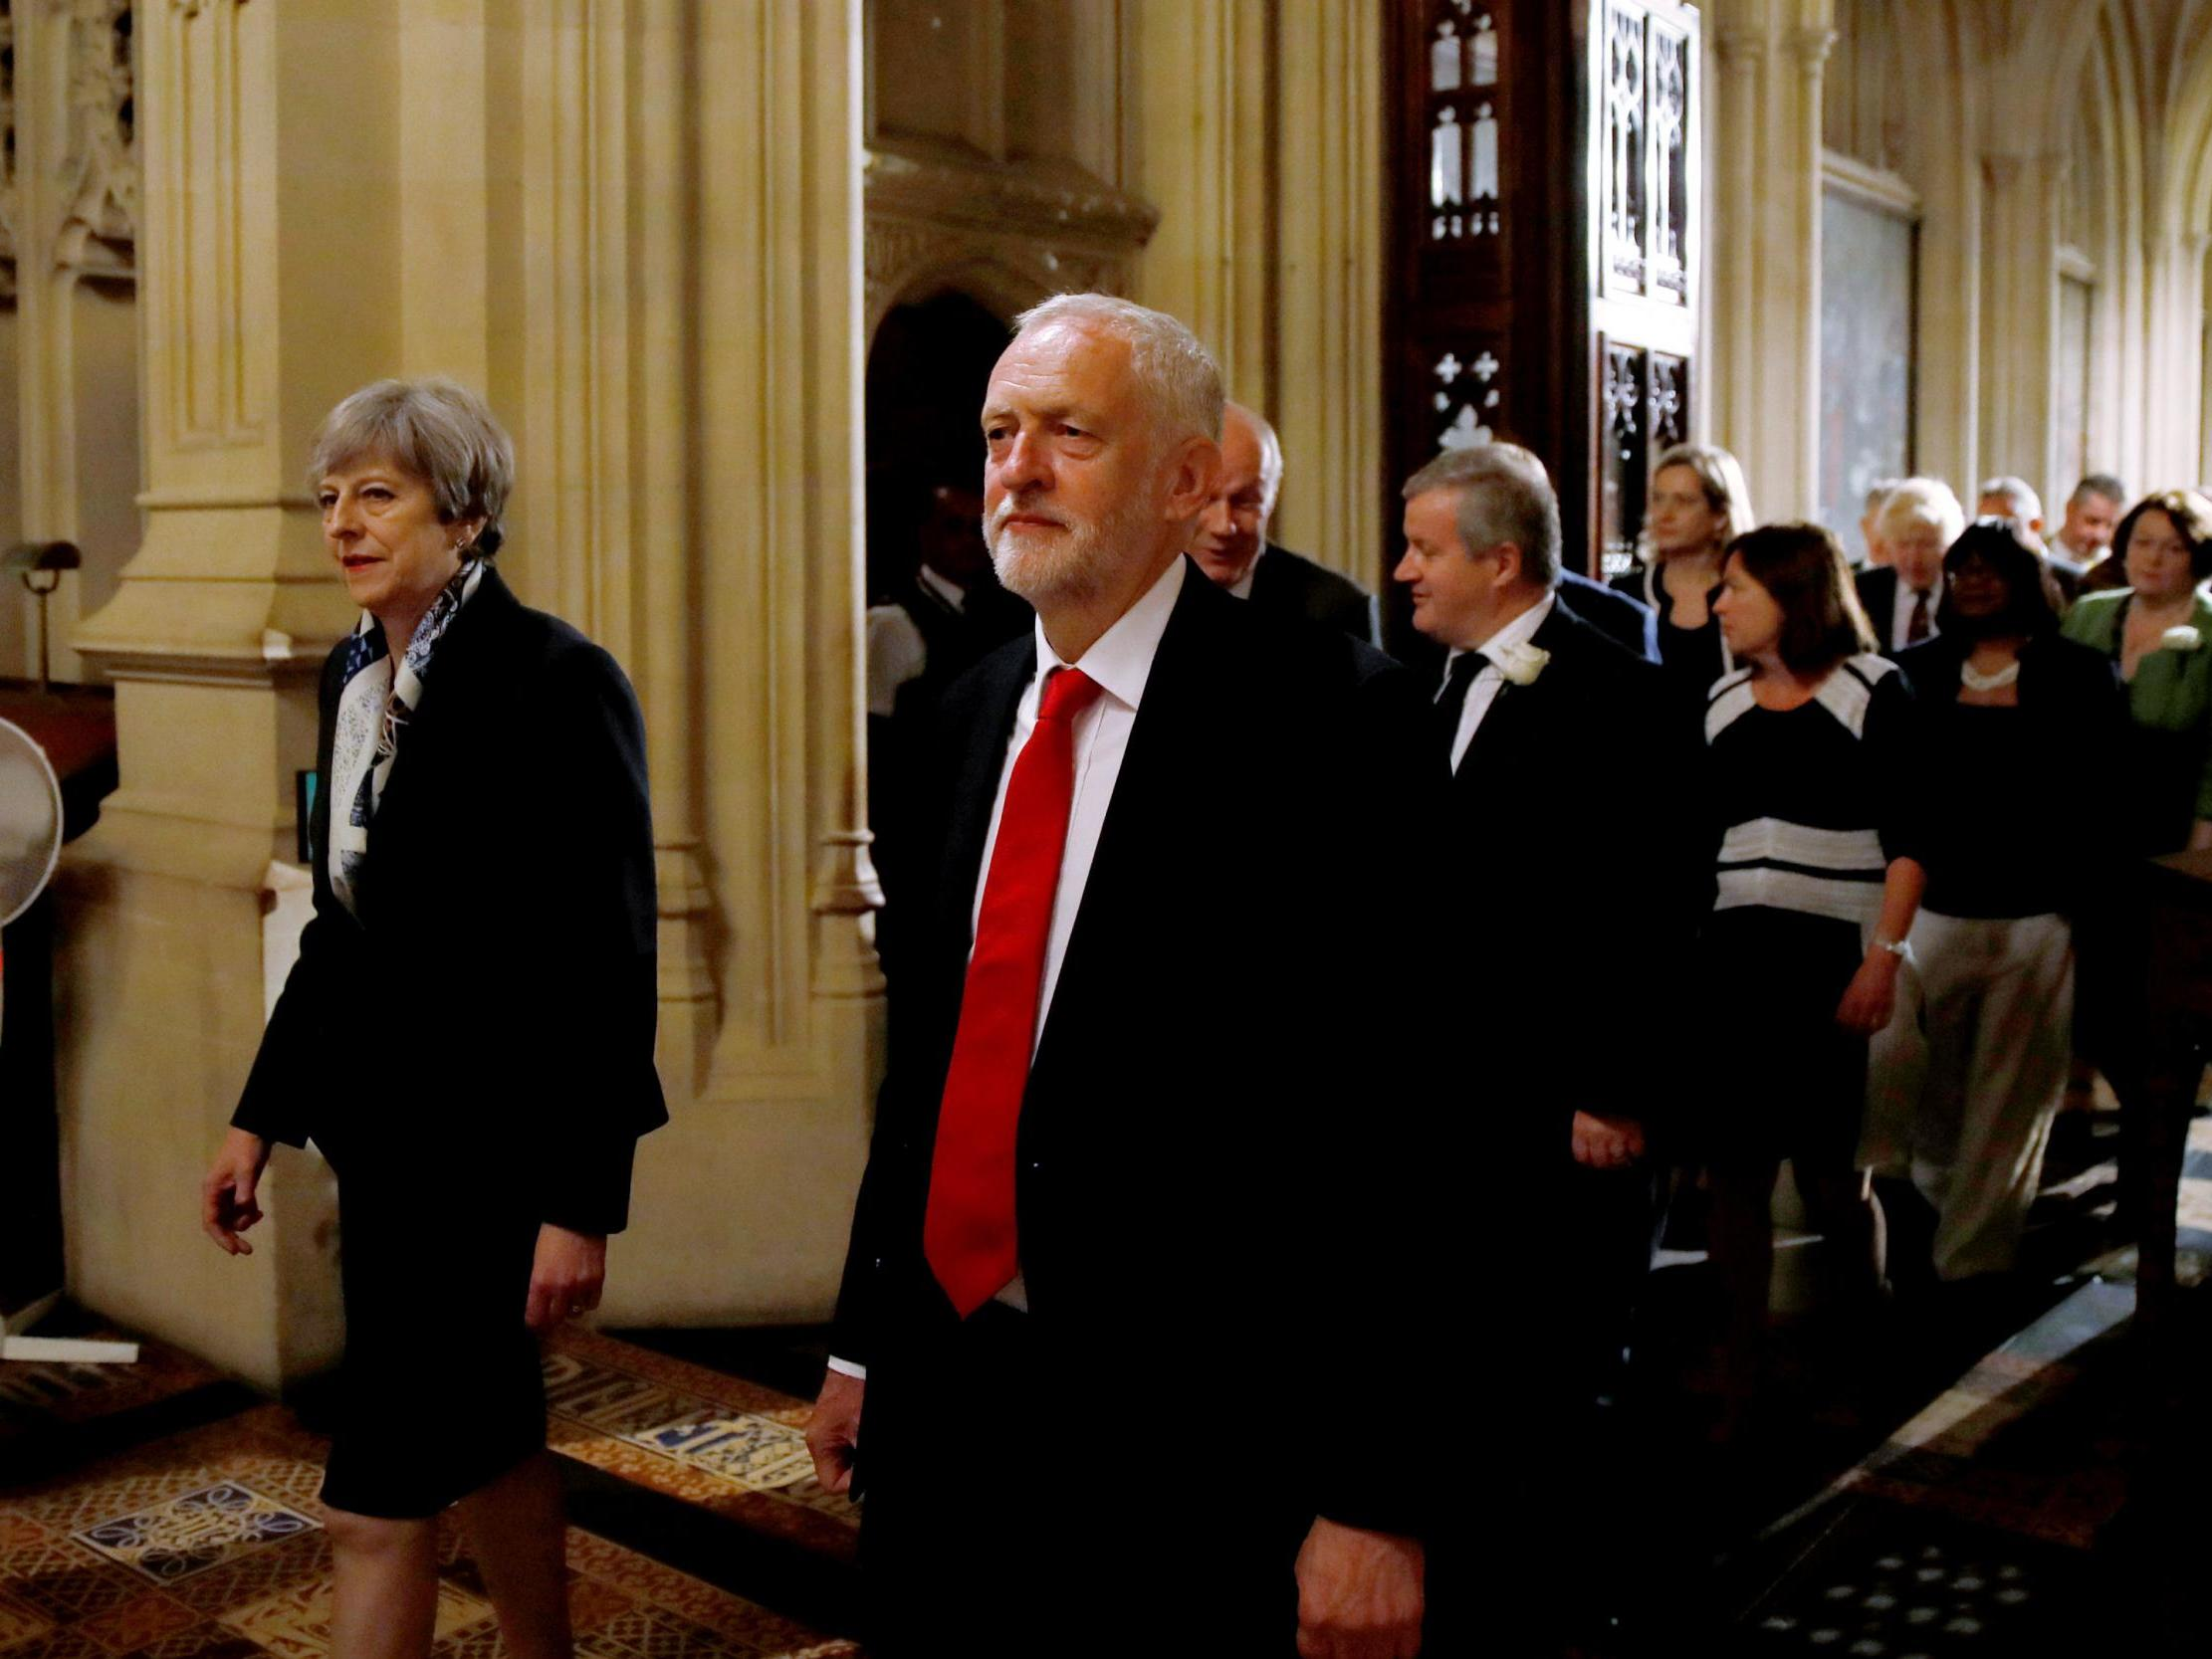 Most Britons ready to vote for new centre-ground party amid Tory and Labour chaos, new poll finds